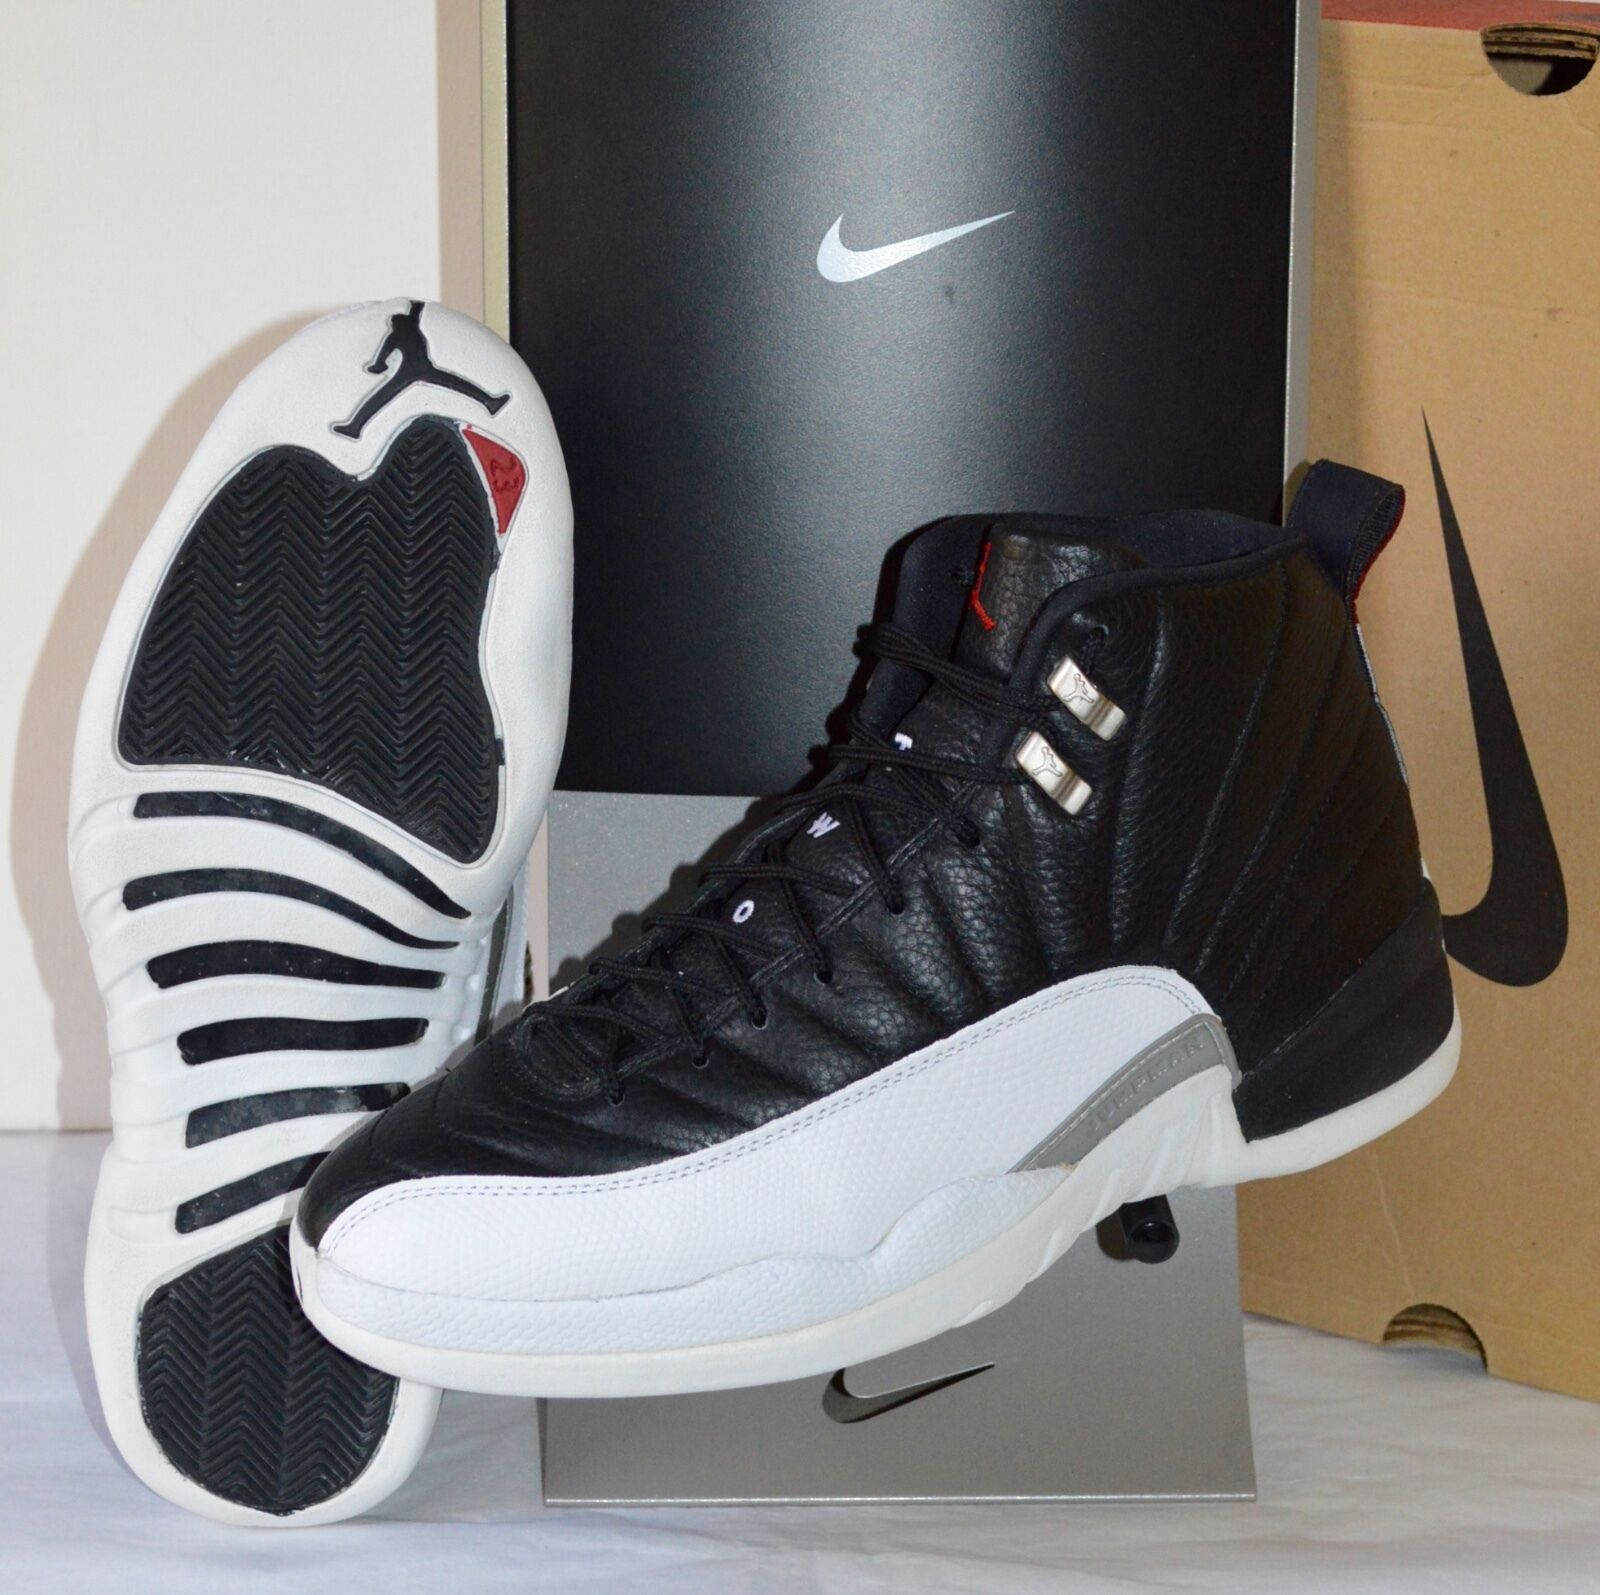 1997 Nike Air Jordan XII Black/White/Varsity Red Playoffs OG Mid VNDS Price reduction The most popular shoes for men and women